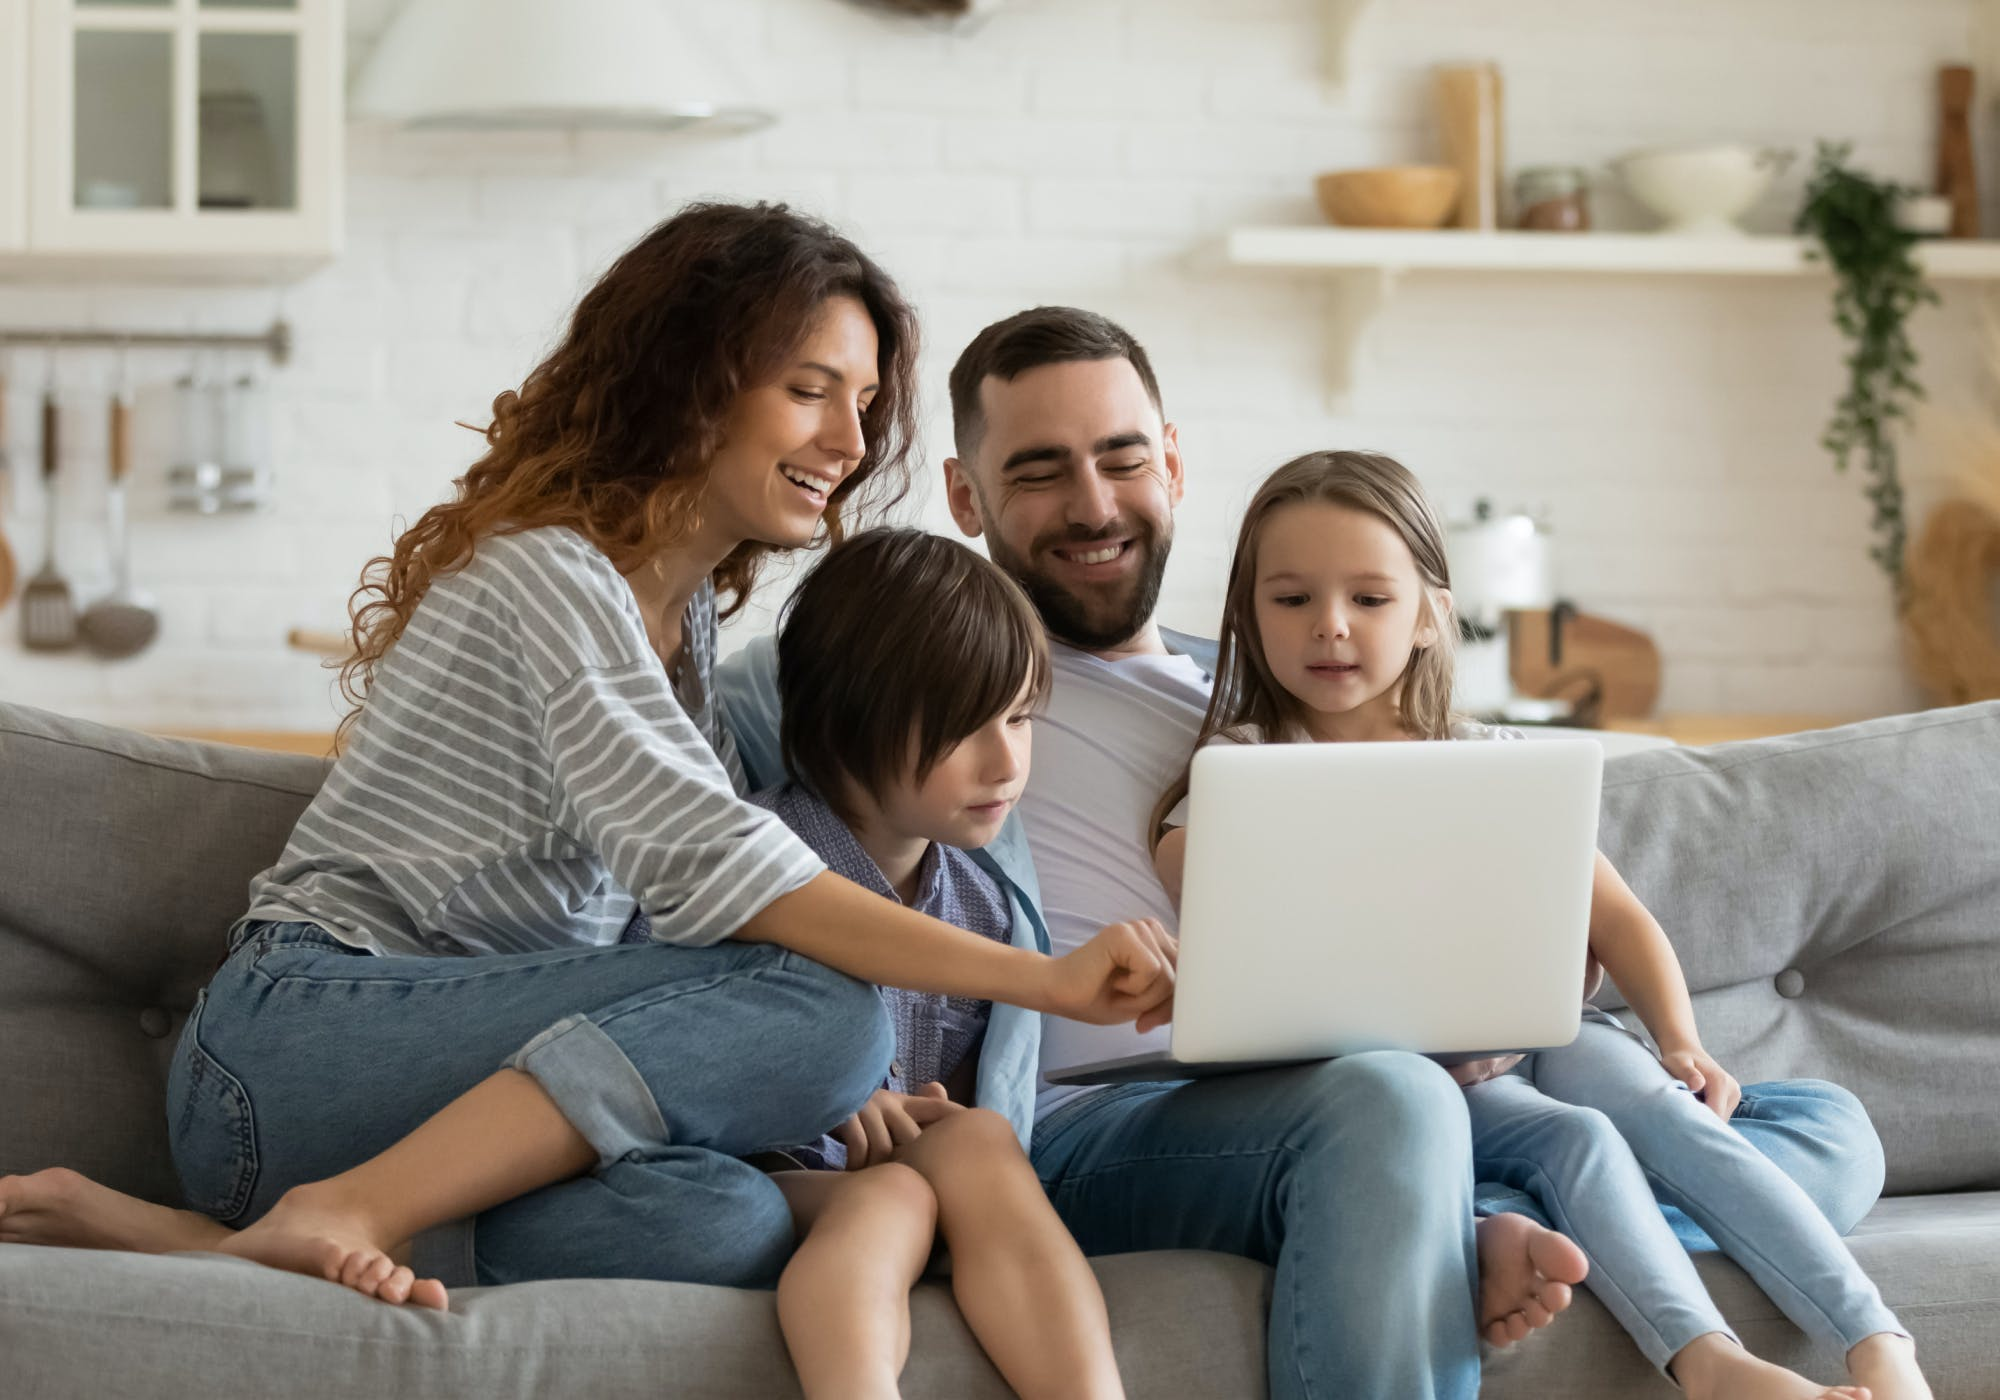 Two parents and their little boy and girl, on a couch, looking at a laptop